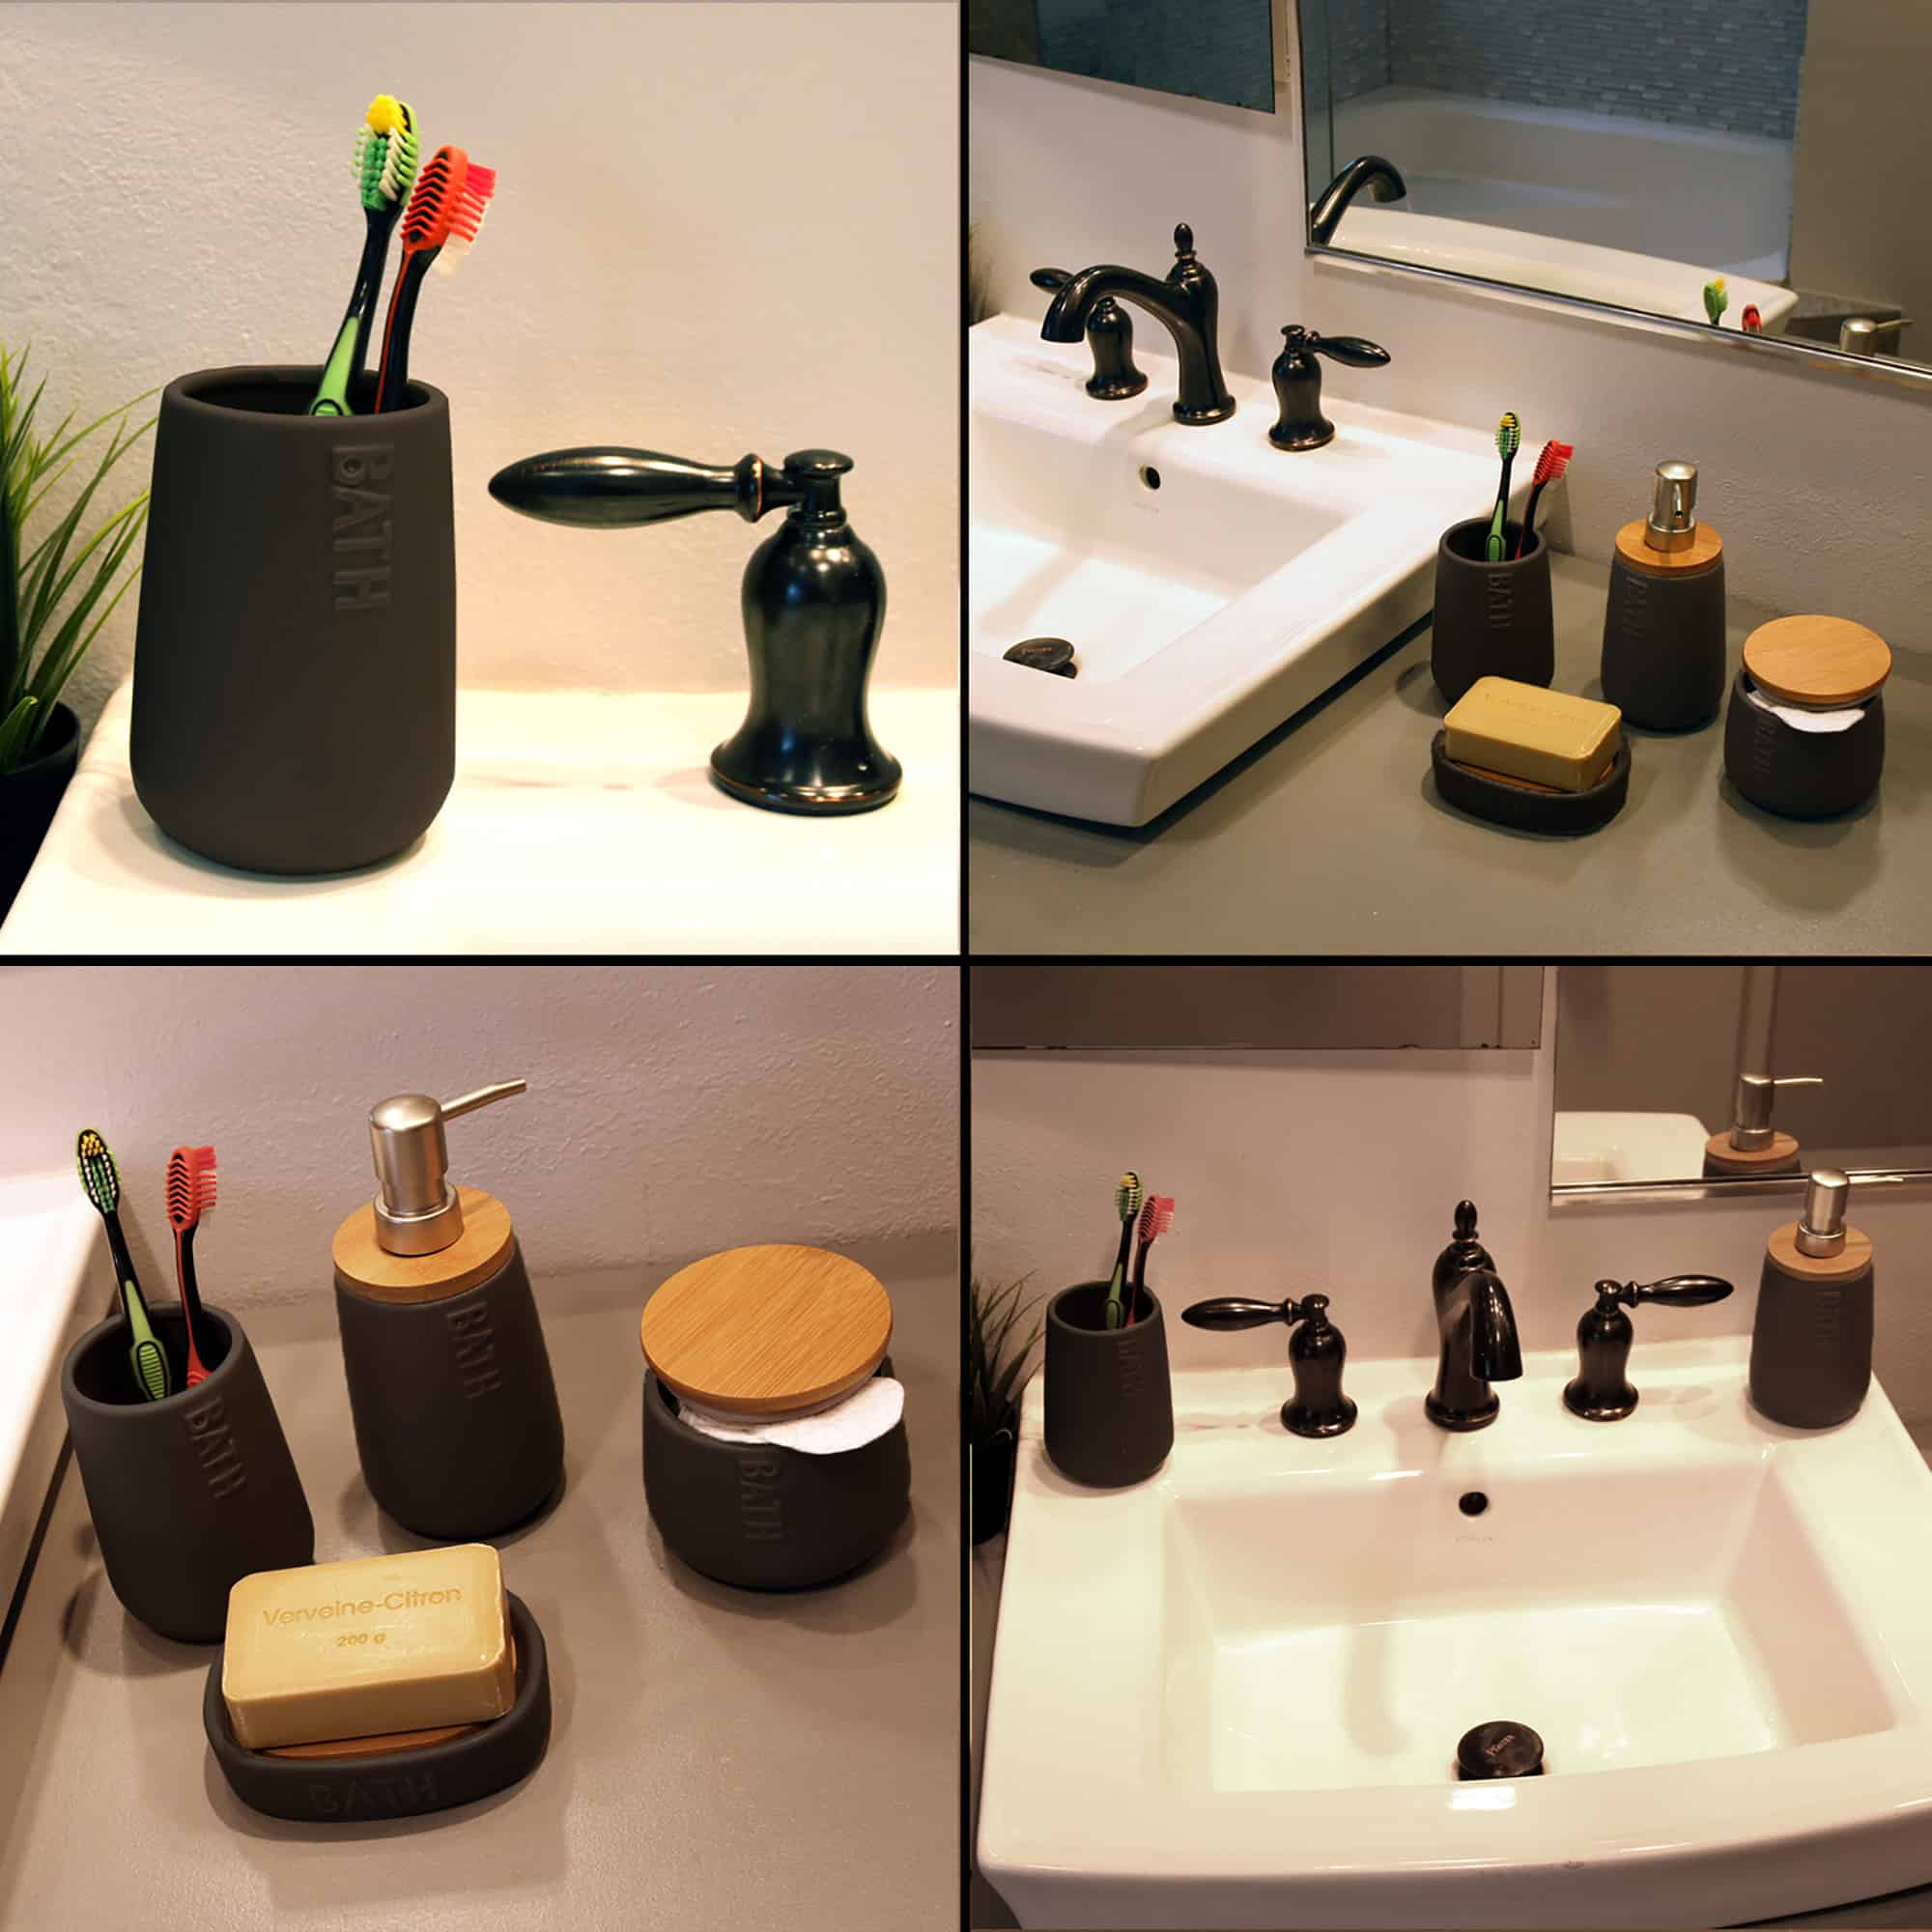 Bath D Collection Water Round Tumbler-Toothbrush Holder Dolomite Black